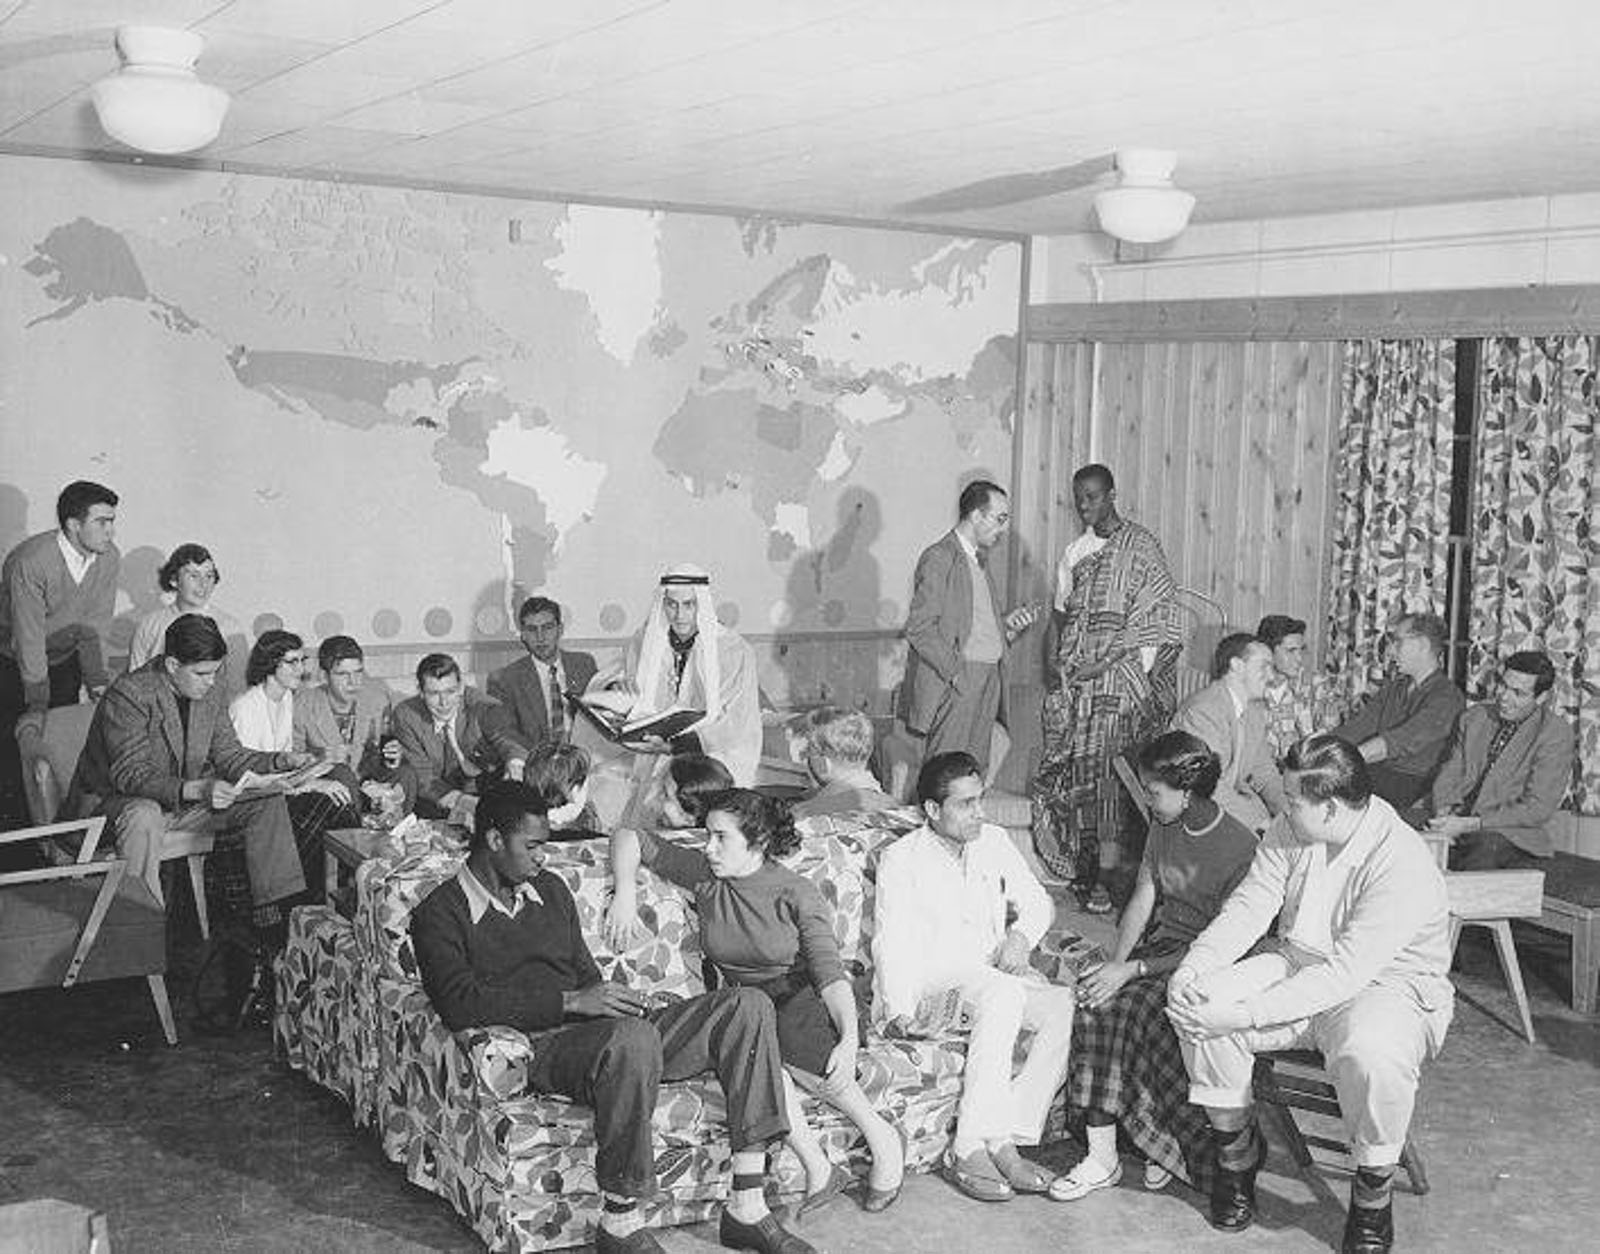 Students socializing in international house on campus in an undated photo.